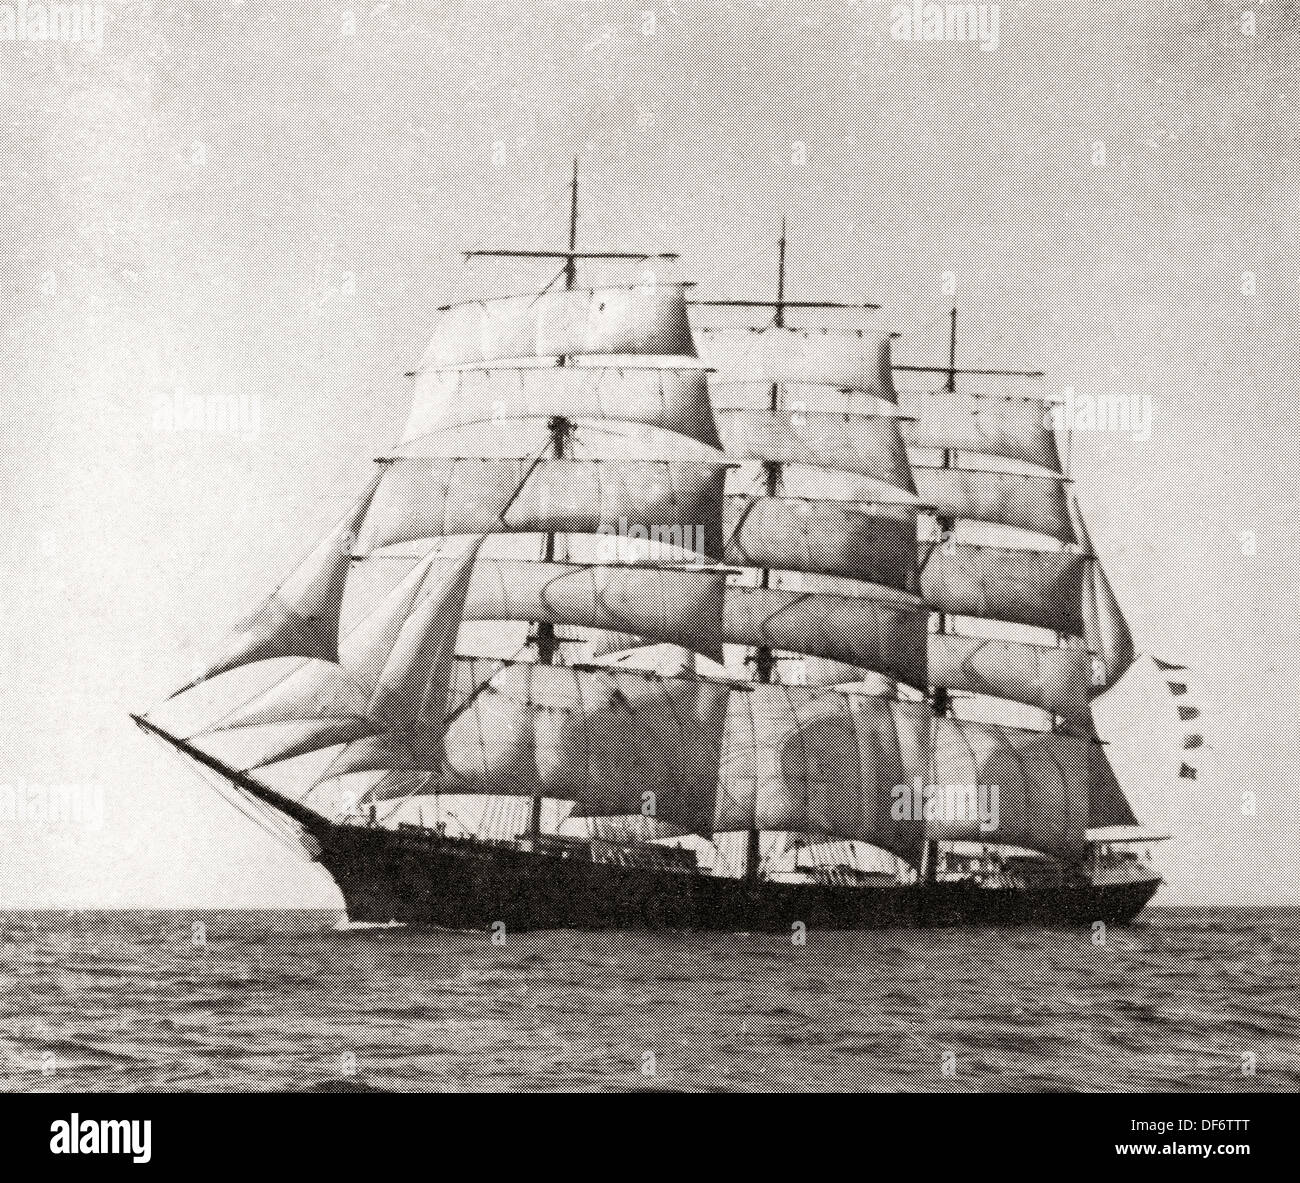 The American barque Golden Gate. From The Romance of the Merchant Ship, published 1931. - Stock Image